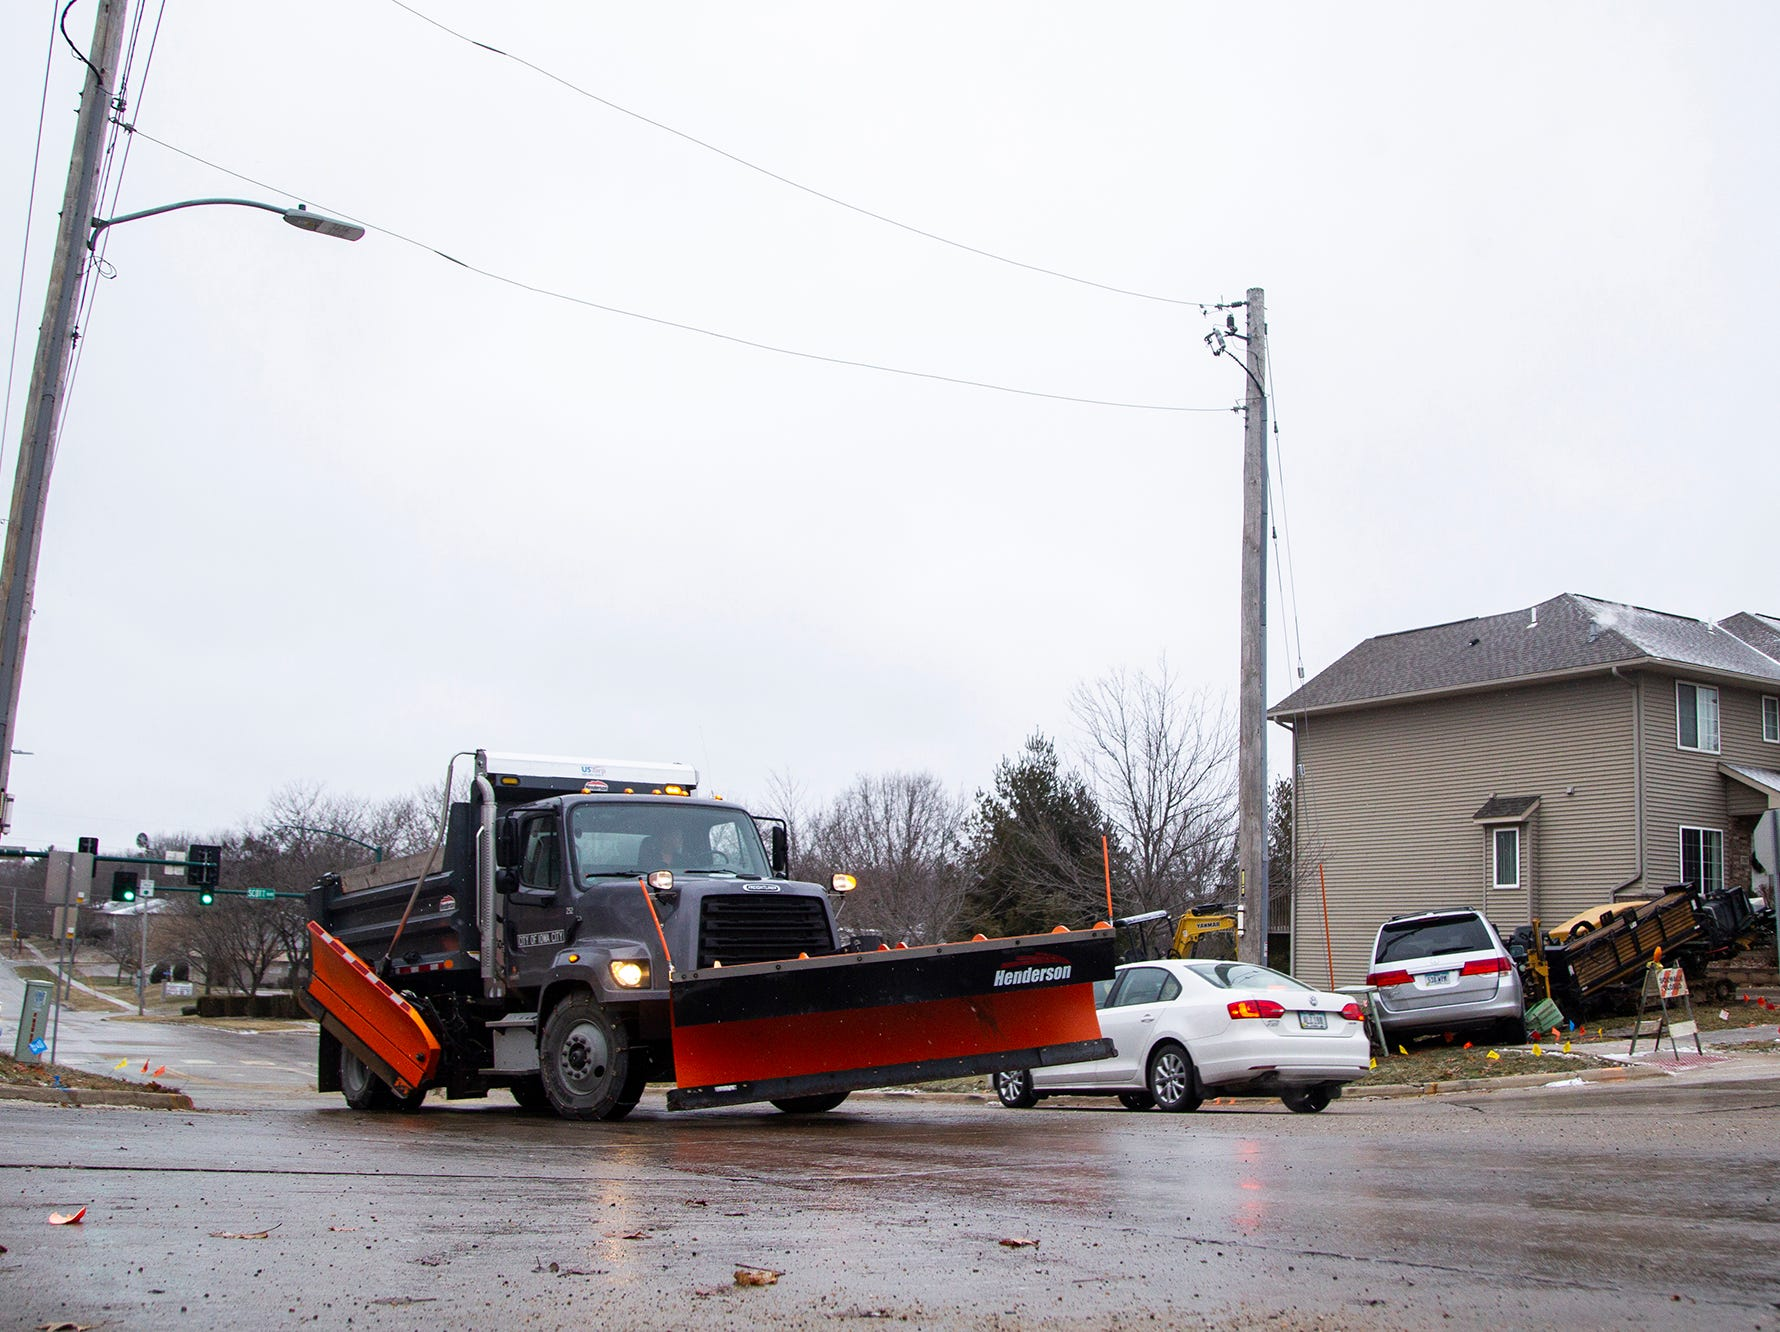 An Iowa City snowplow drives past a scene where a minivan hit an electrical box during icy road conditions on Friday, Dec. 28, 2018, off of Court Street near Scott Park Drive on the east side of Iowa City.